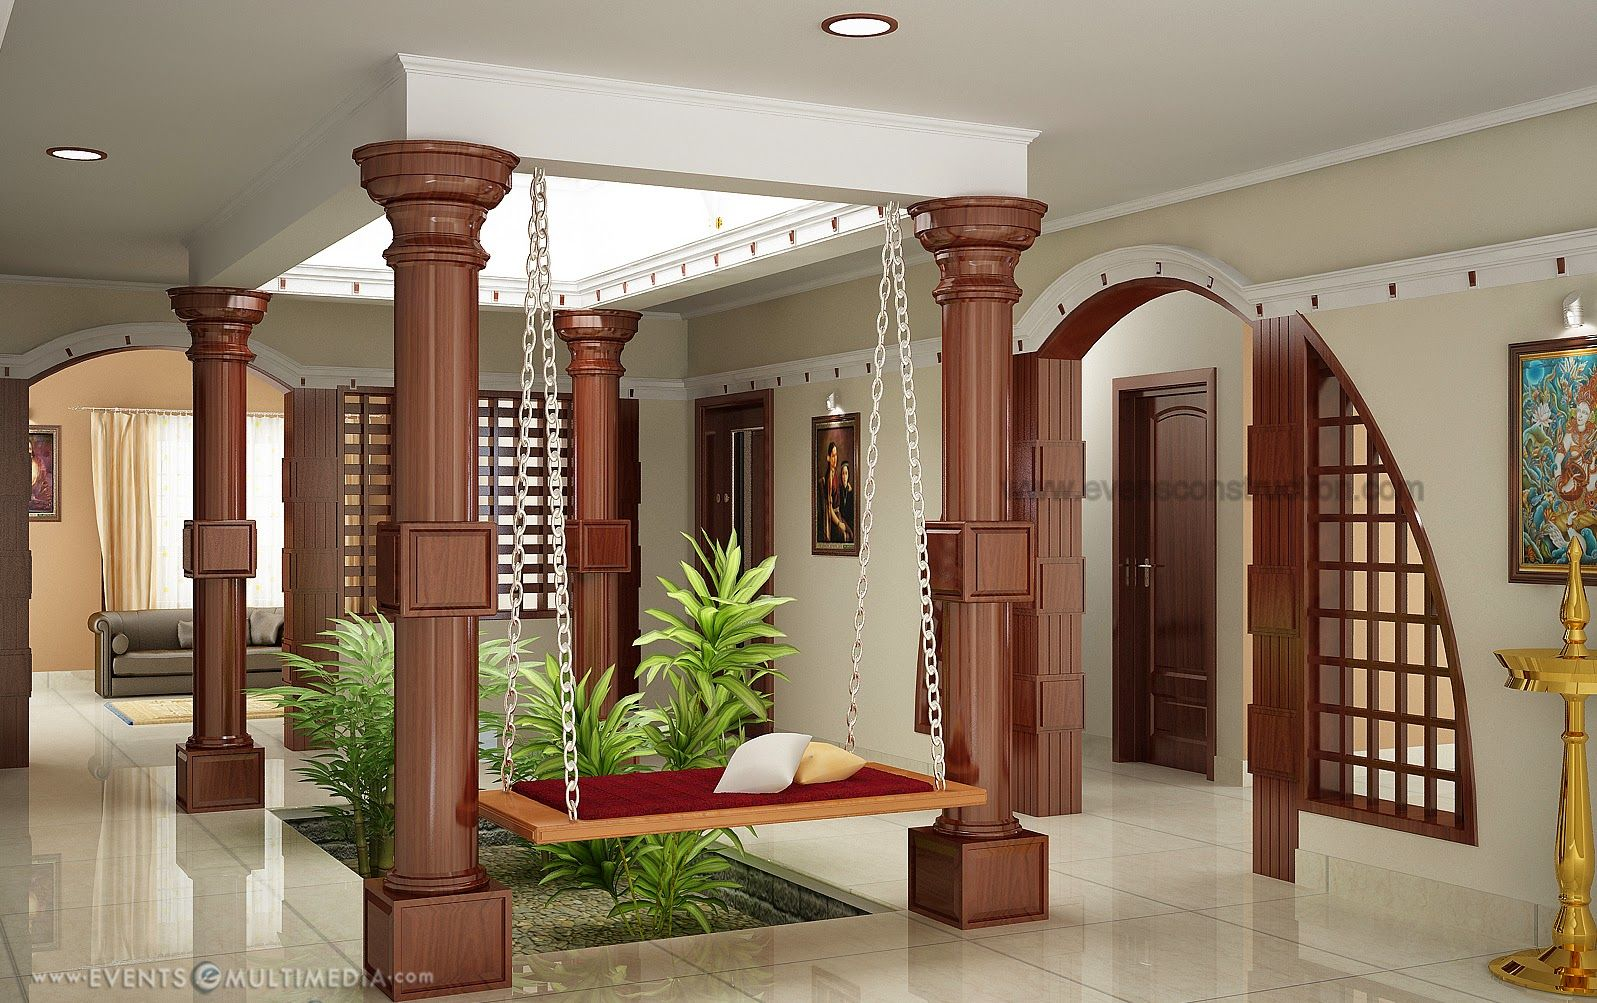 Interior design kerala google search inside and for Kerala home interior designs photos